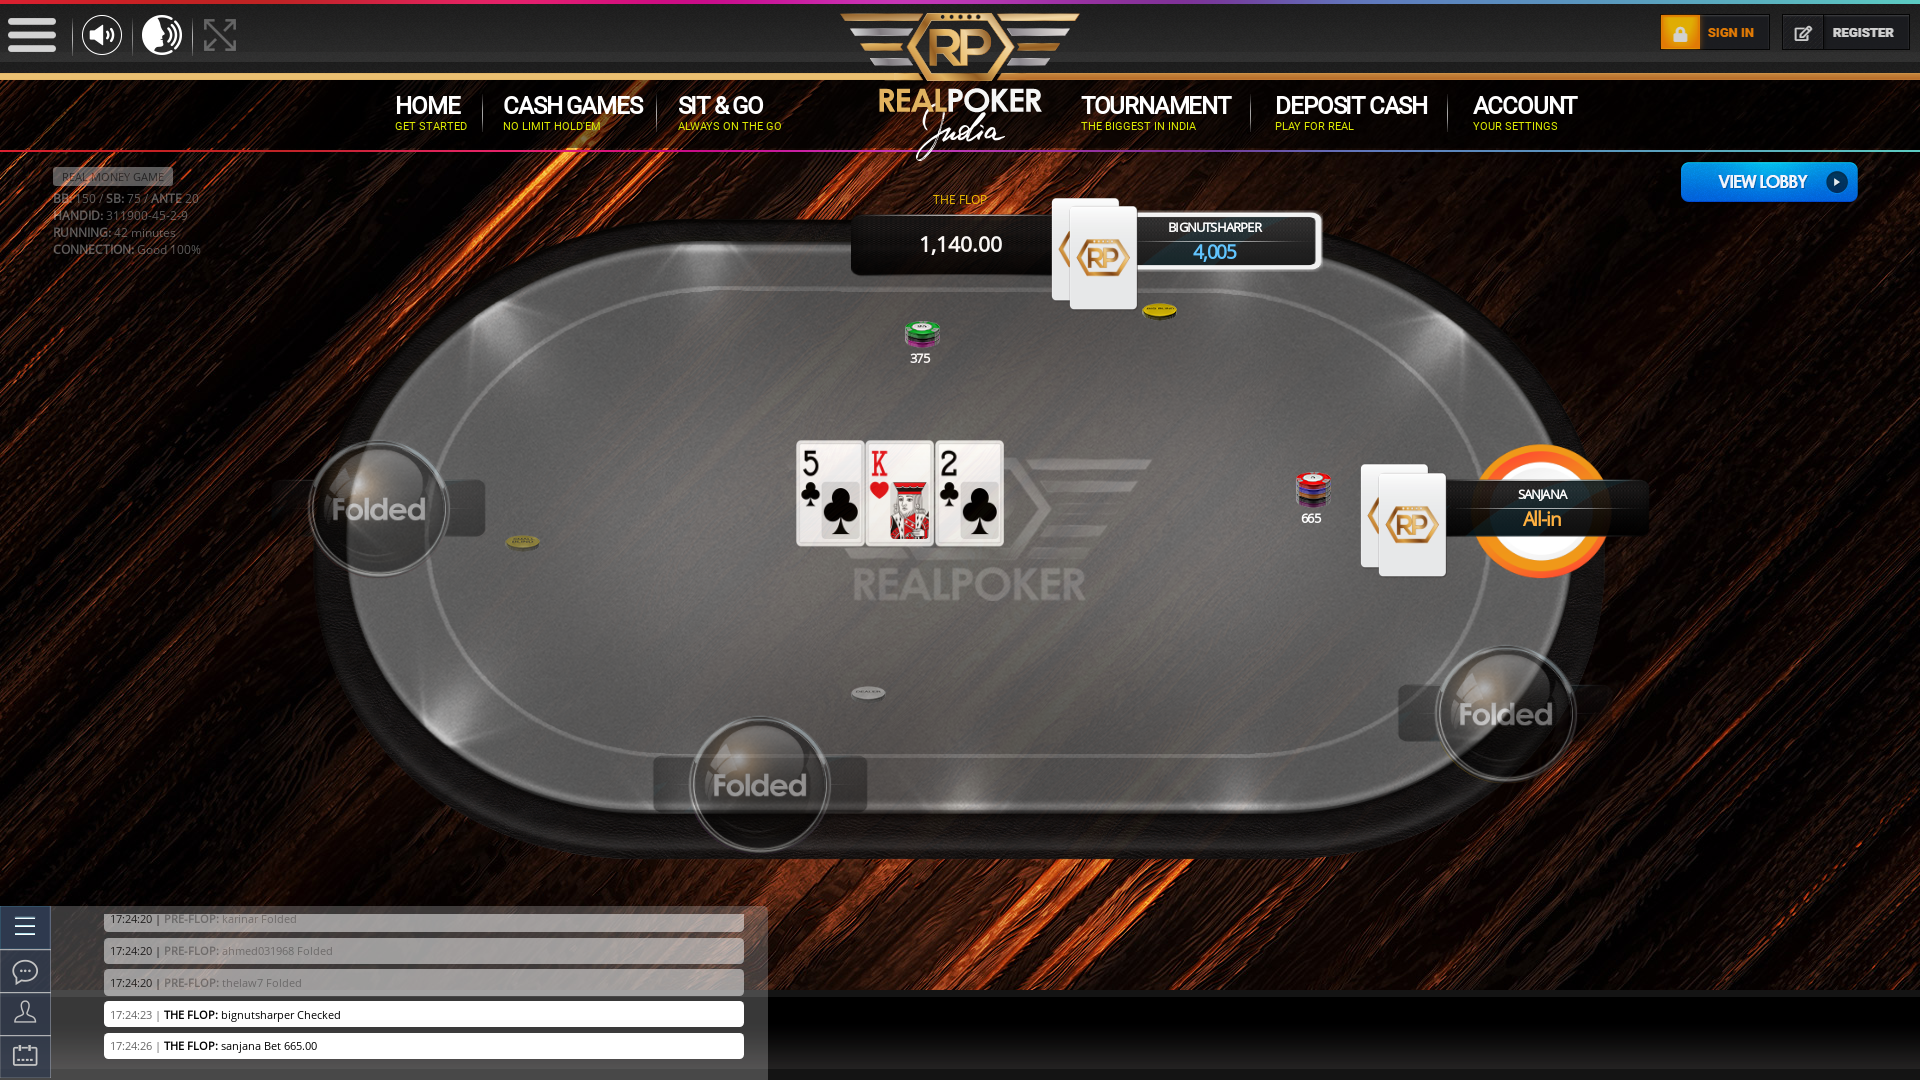 Indian 10 player poker in the 41st minute